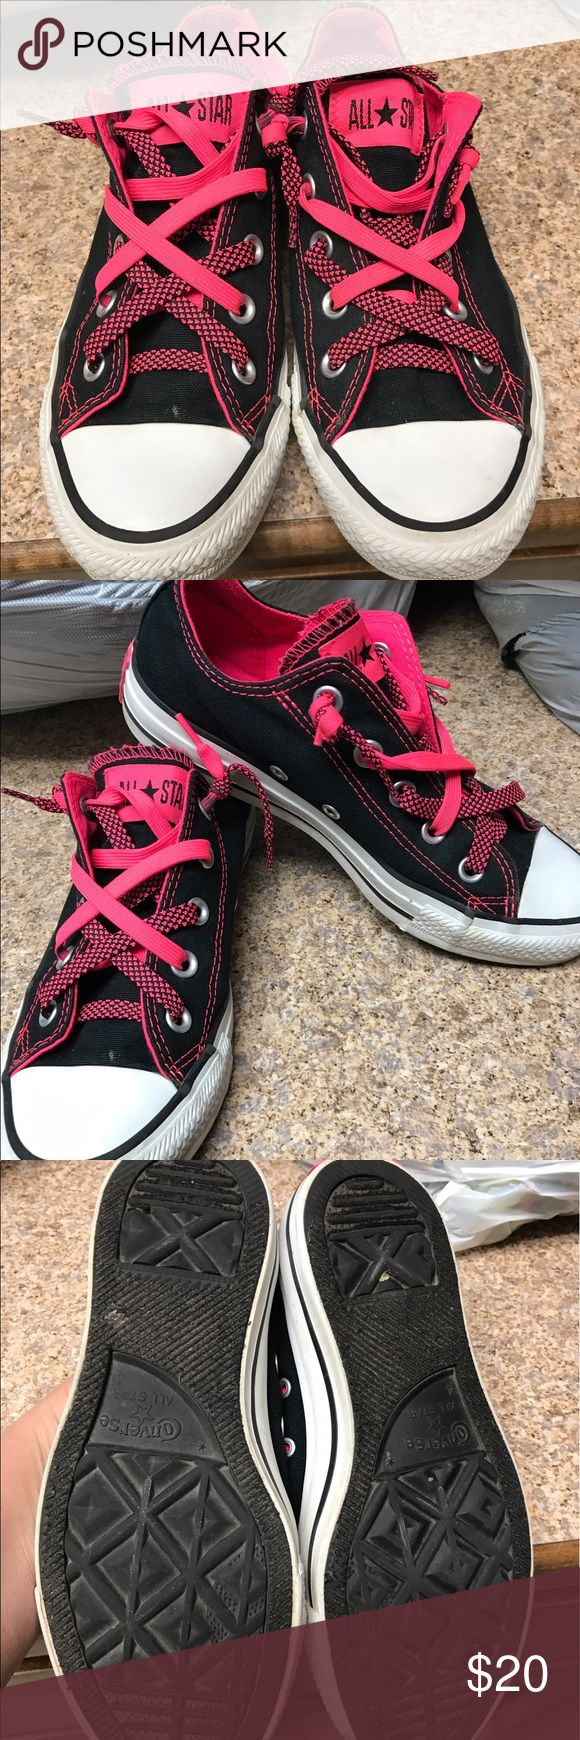 Converse All Stars Ladies Converse All Stars Size 6. Black with hot pink. In pretty good condition. Converse Shoes Sneakers